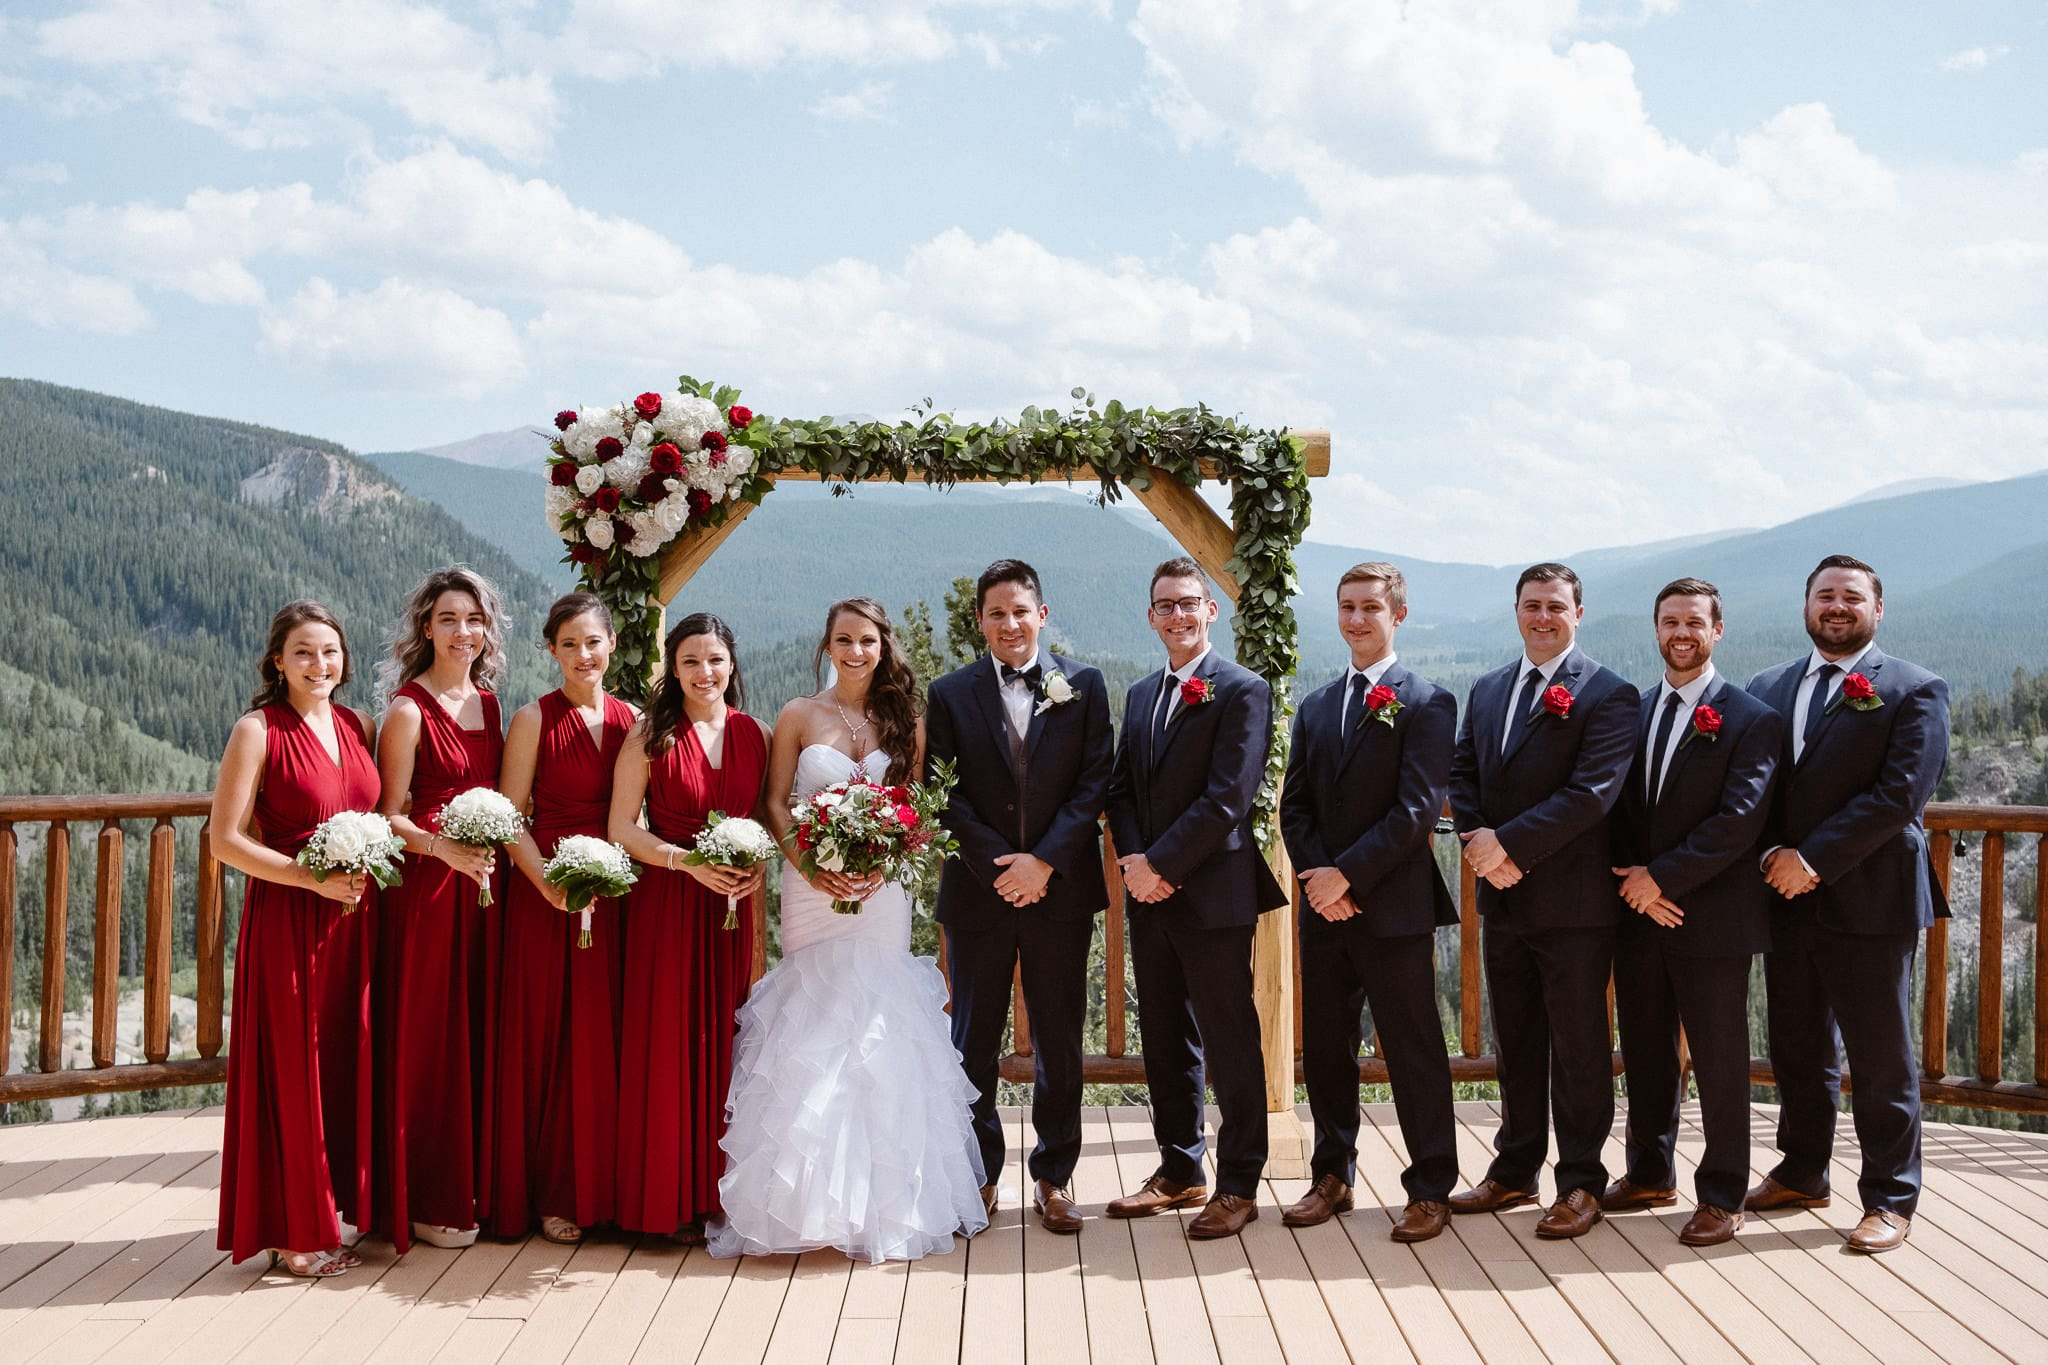 Lodge at Breckenridge Wedding Photographer, Colorado mountain wedding photographer, bride and groom with wedding party, dark red bridesmaid dresses, dark suits with red boutonnieres